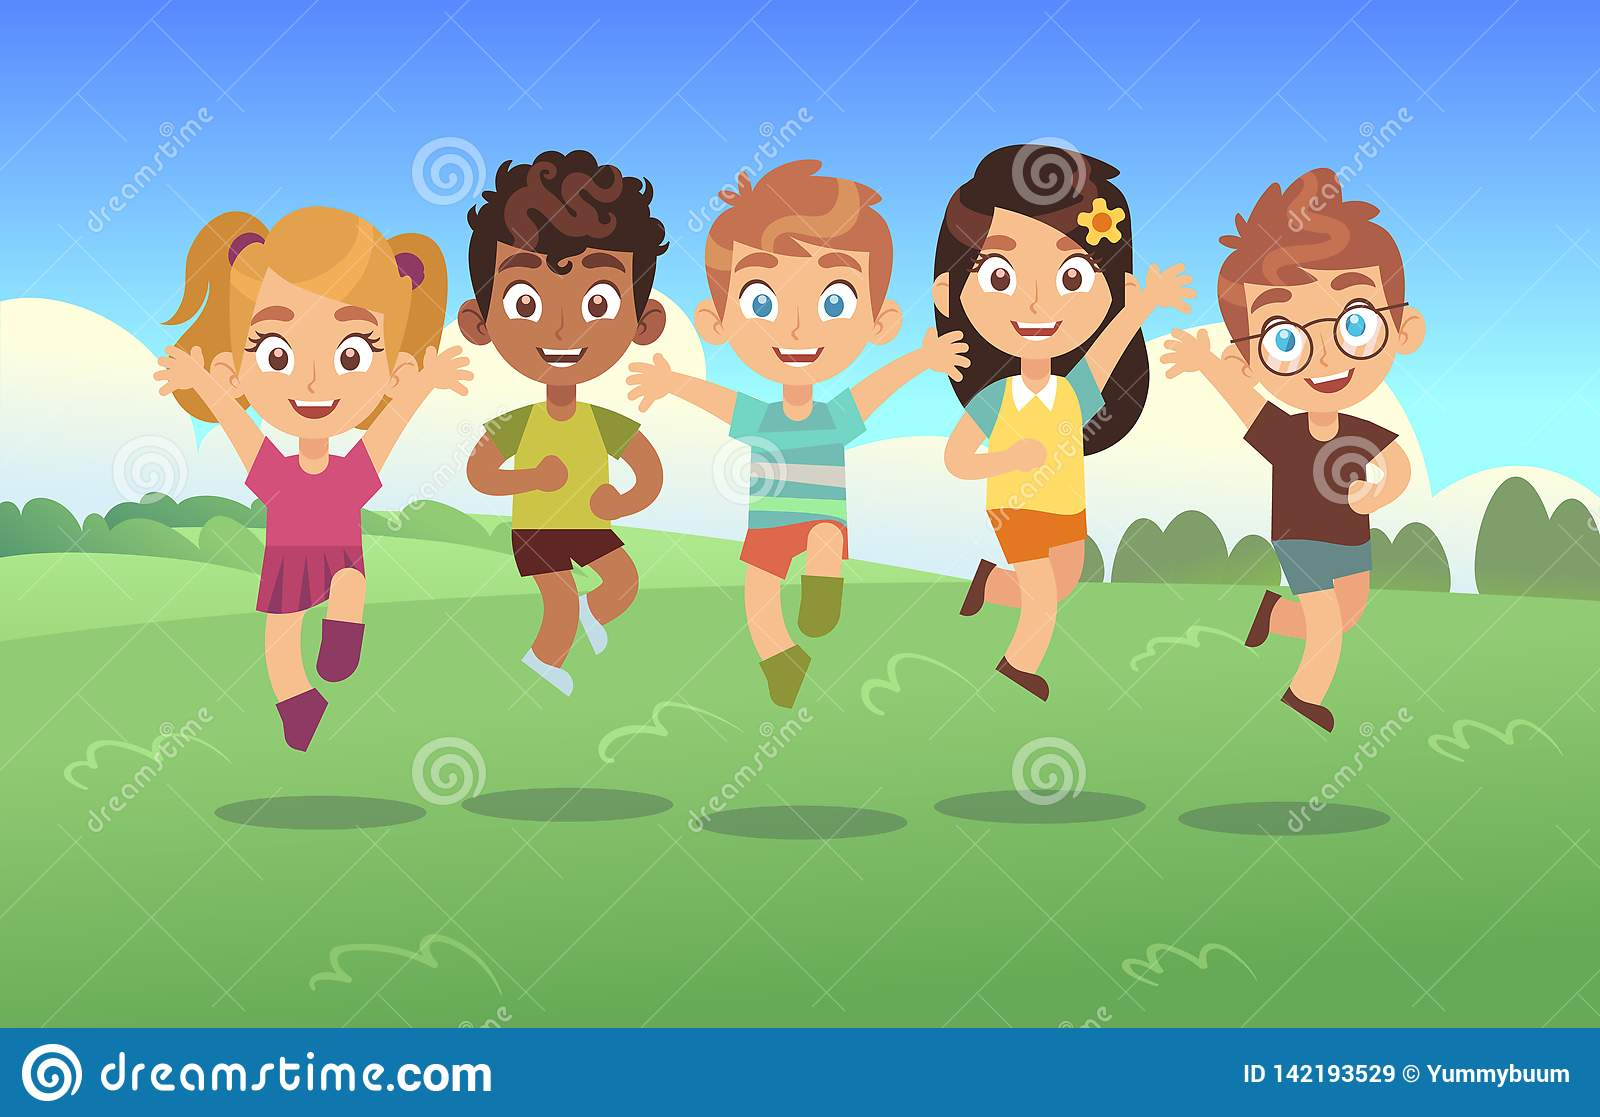 Happy jumping kids. Children holiday cartoon panorama childrens summer meadow park teenagers jump together background